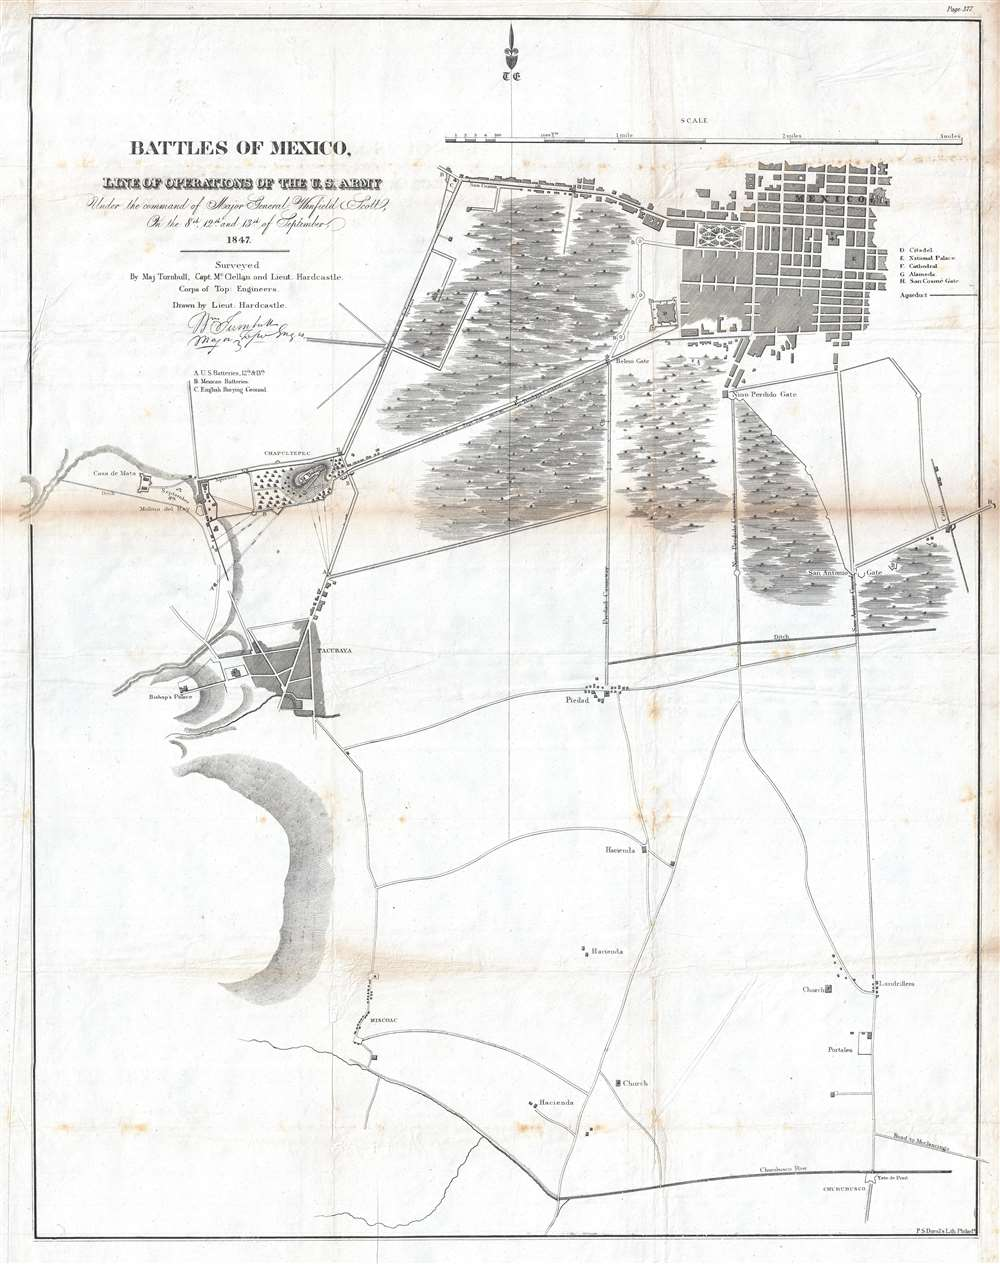 Battles of Mexico, Line of Operations of the U.S. Army under the command of Major General Winfield Scott, on the 8th, 12th and 13th of September, 1847.